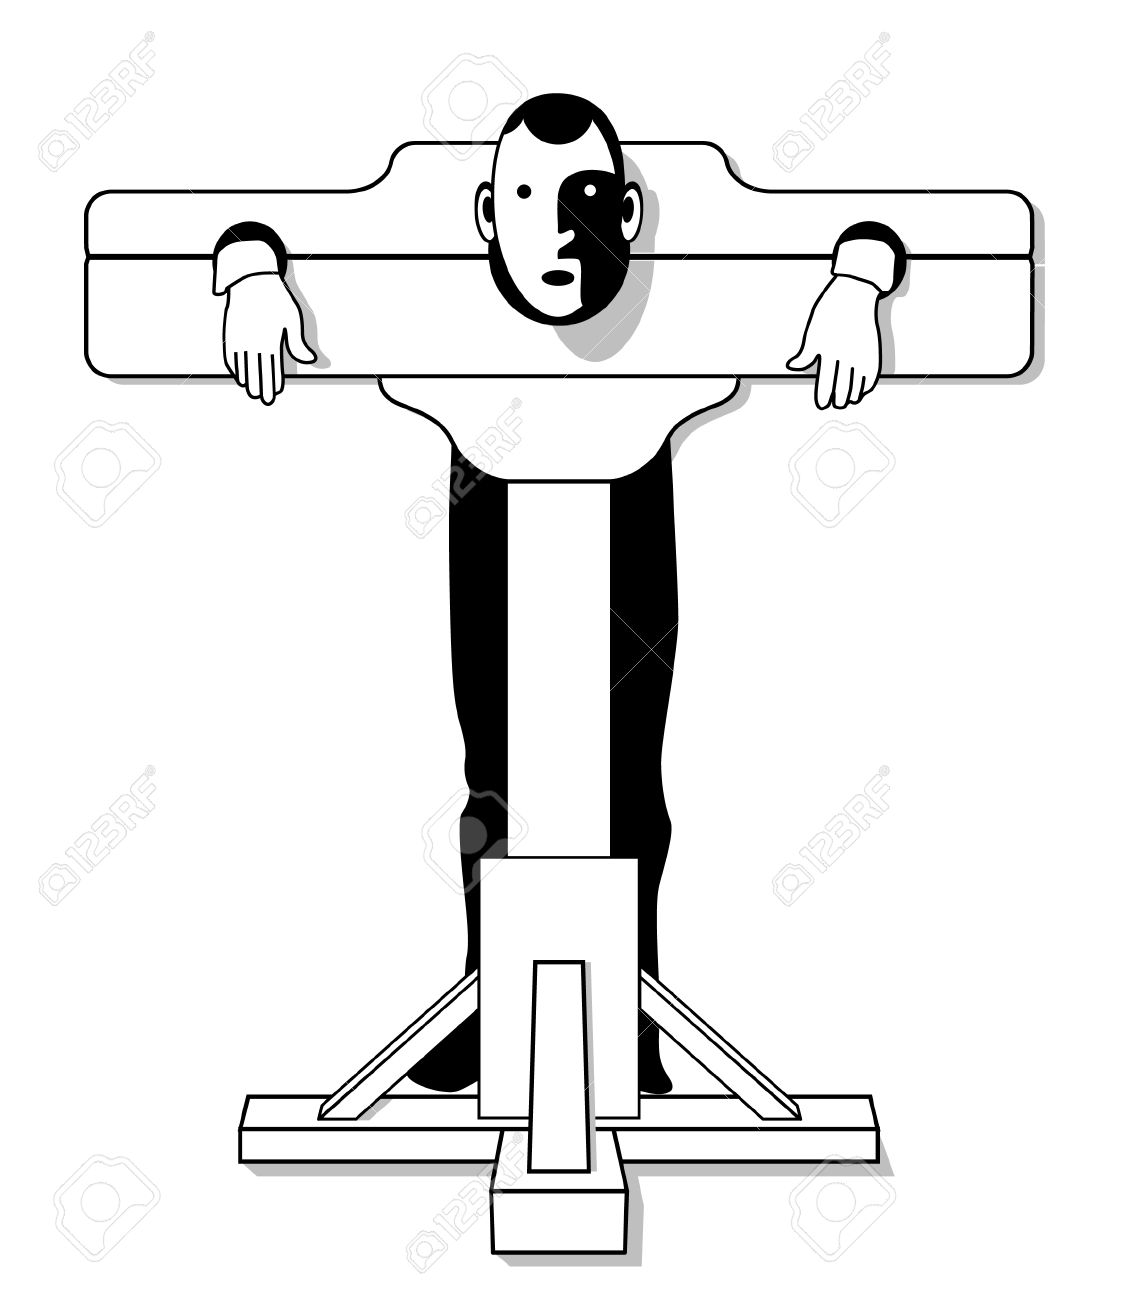 Medieval Torture Device Royalty Free Cliparts Vectors And Stock Illustration Image 7586775